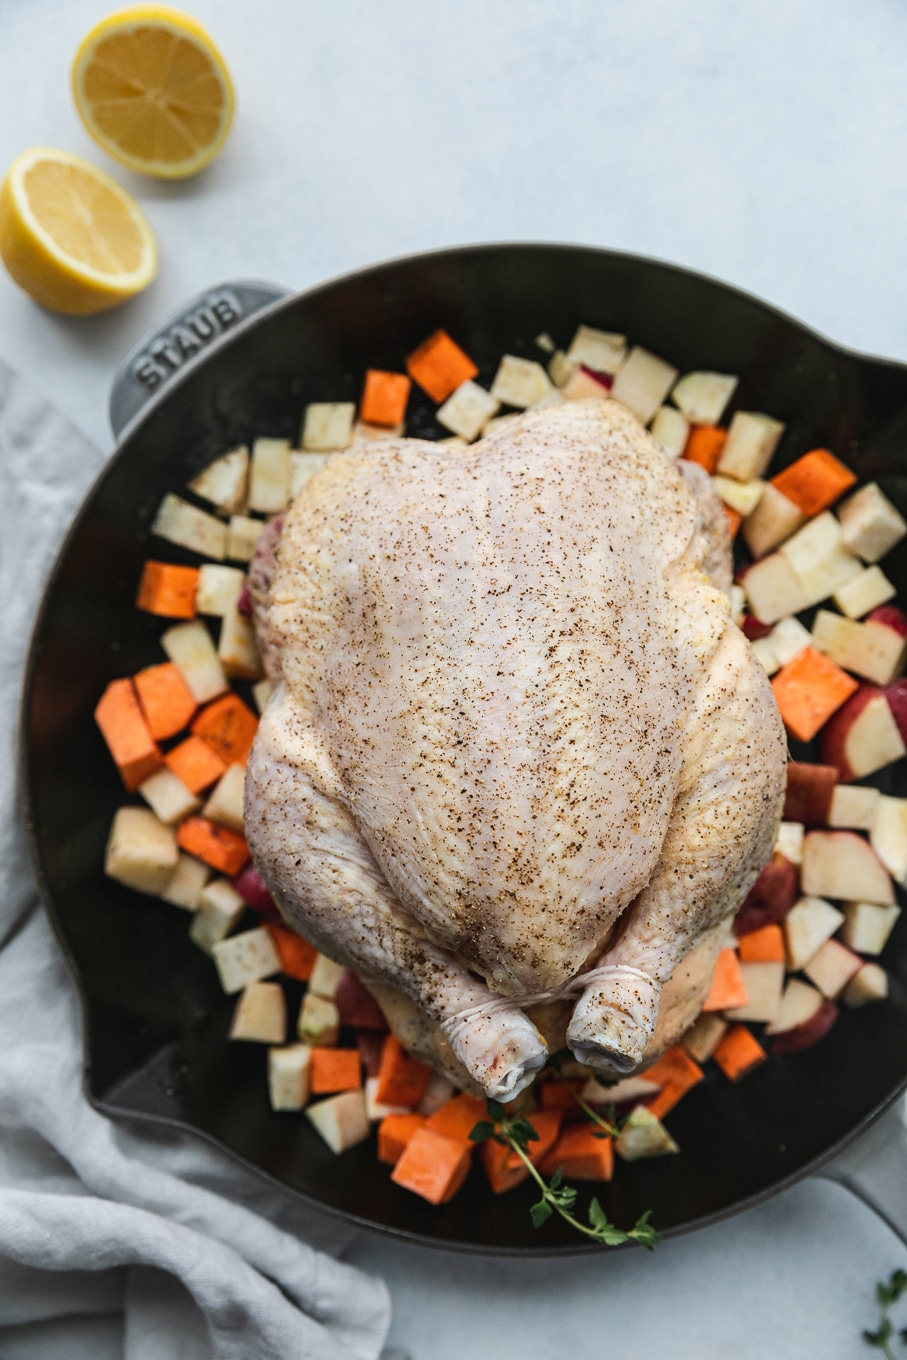 Overhead shot of a raw whole roasted chicken in a cast iron skillet on a bed of diced root vegetables